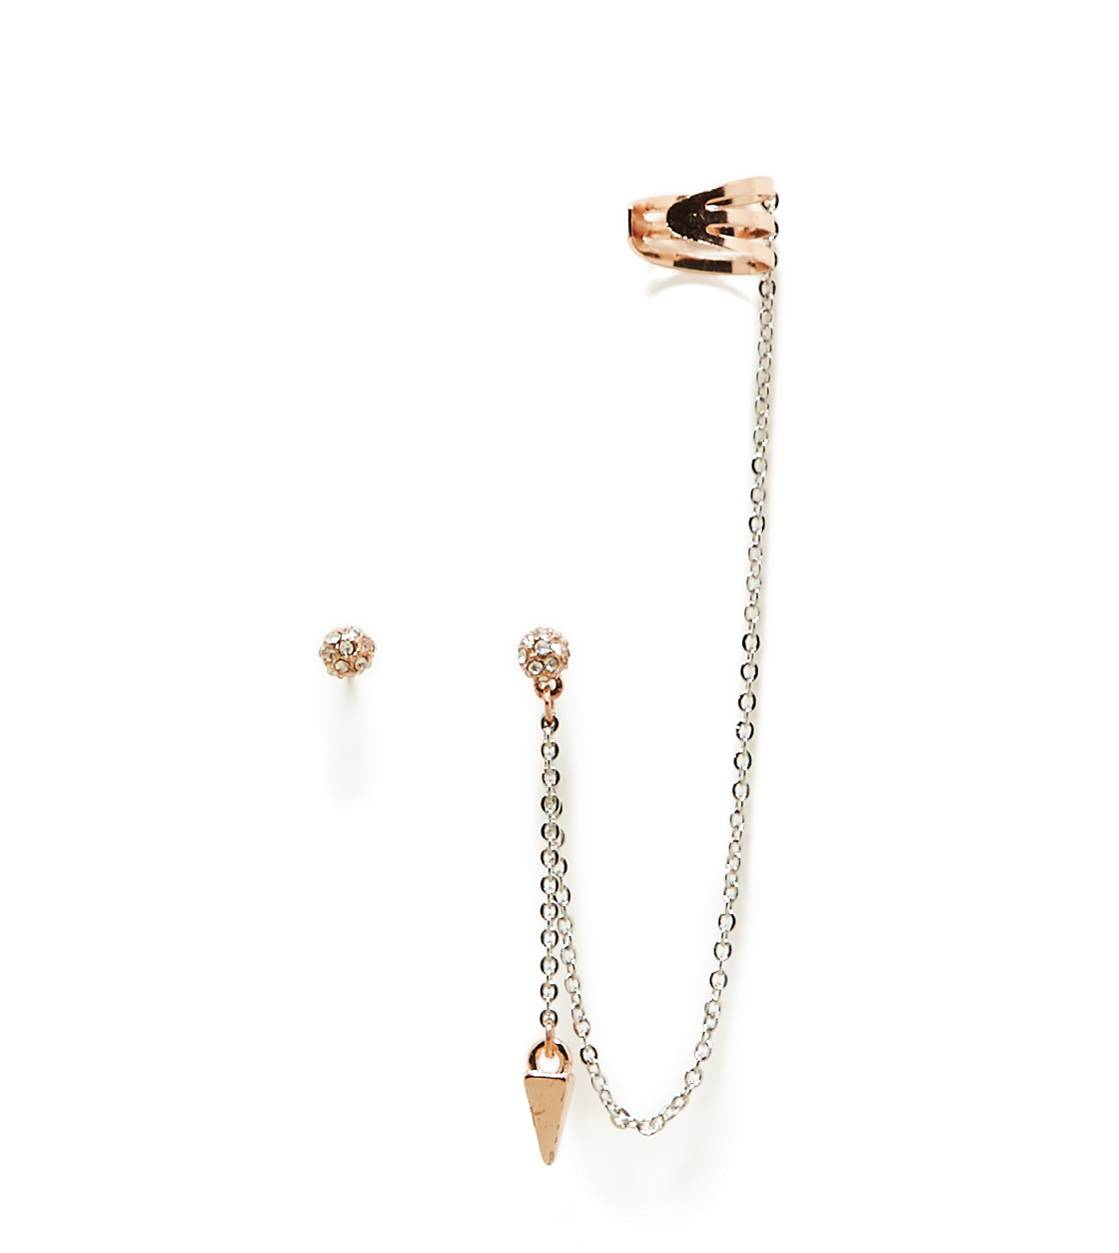 Mixed Metal AEO Rose Gold Spike Ear Cuffs